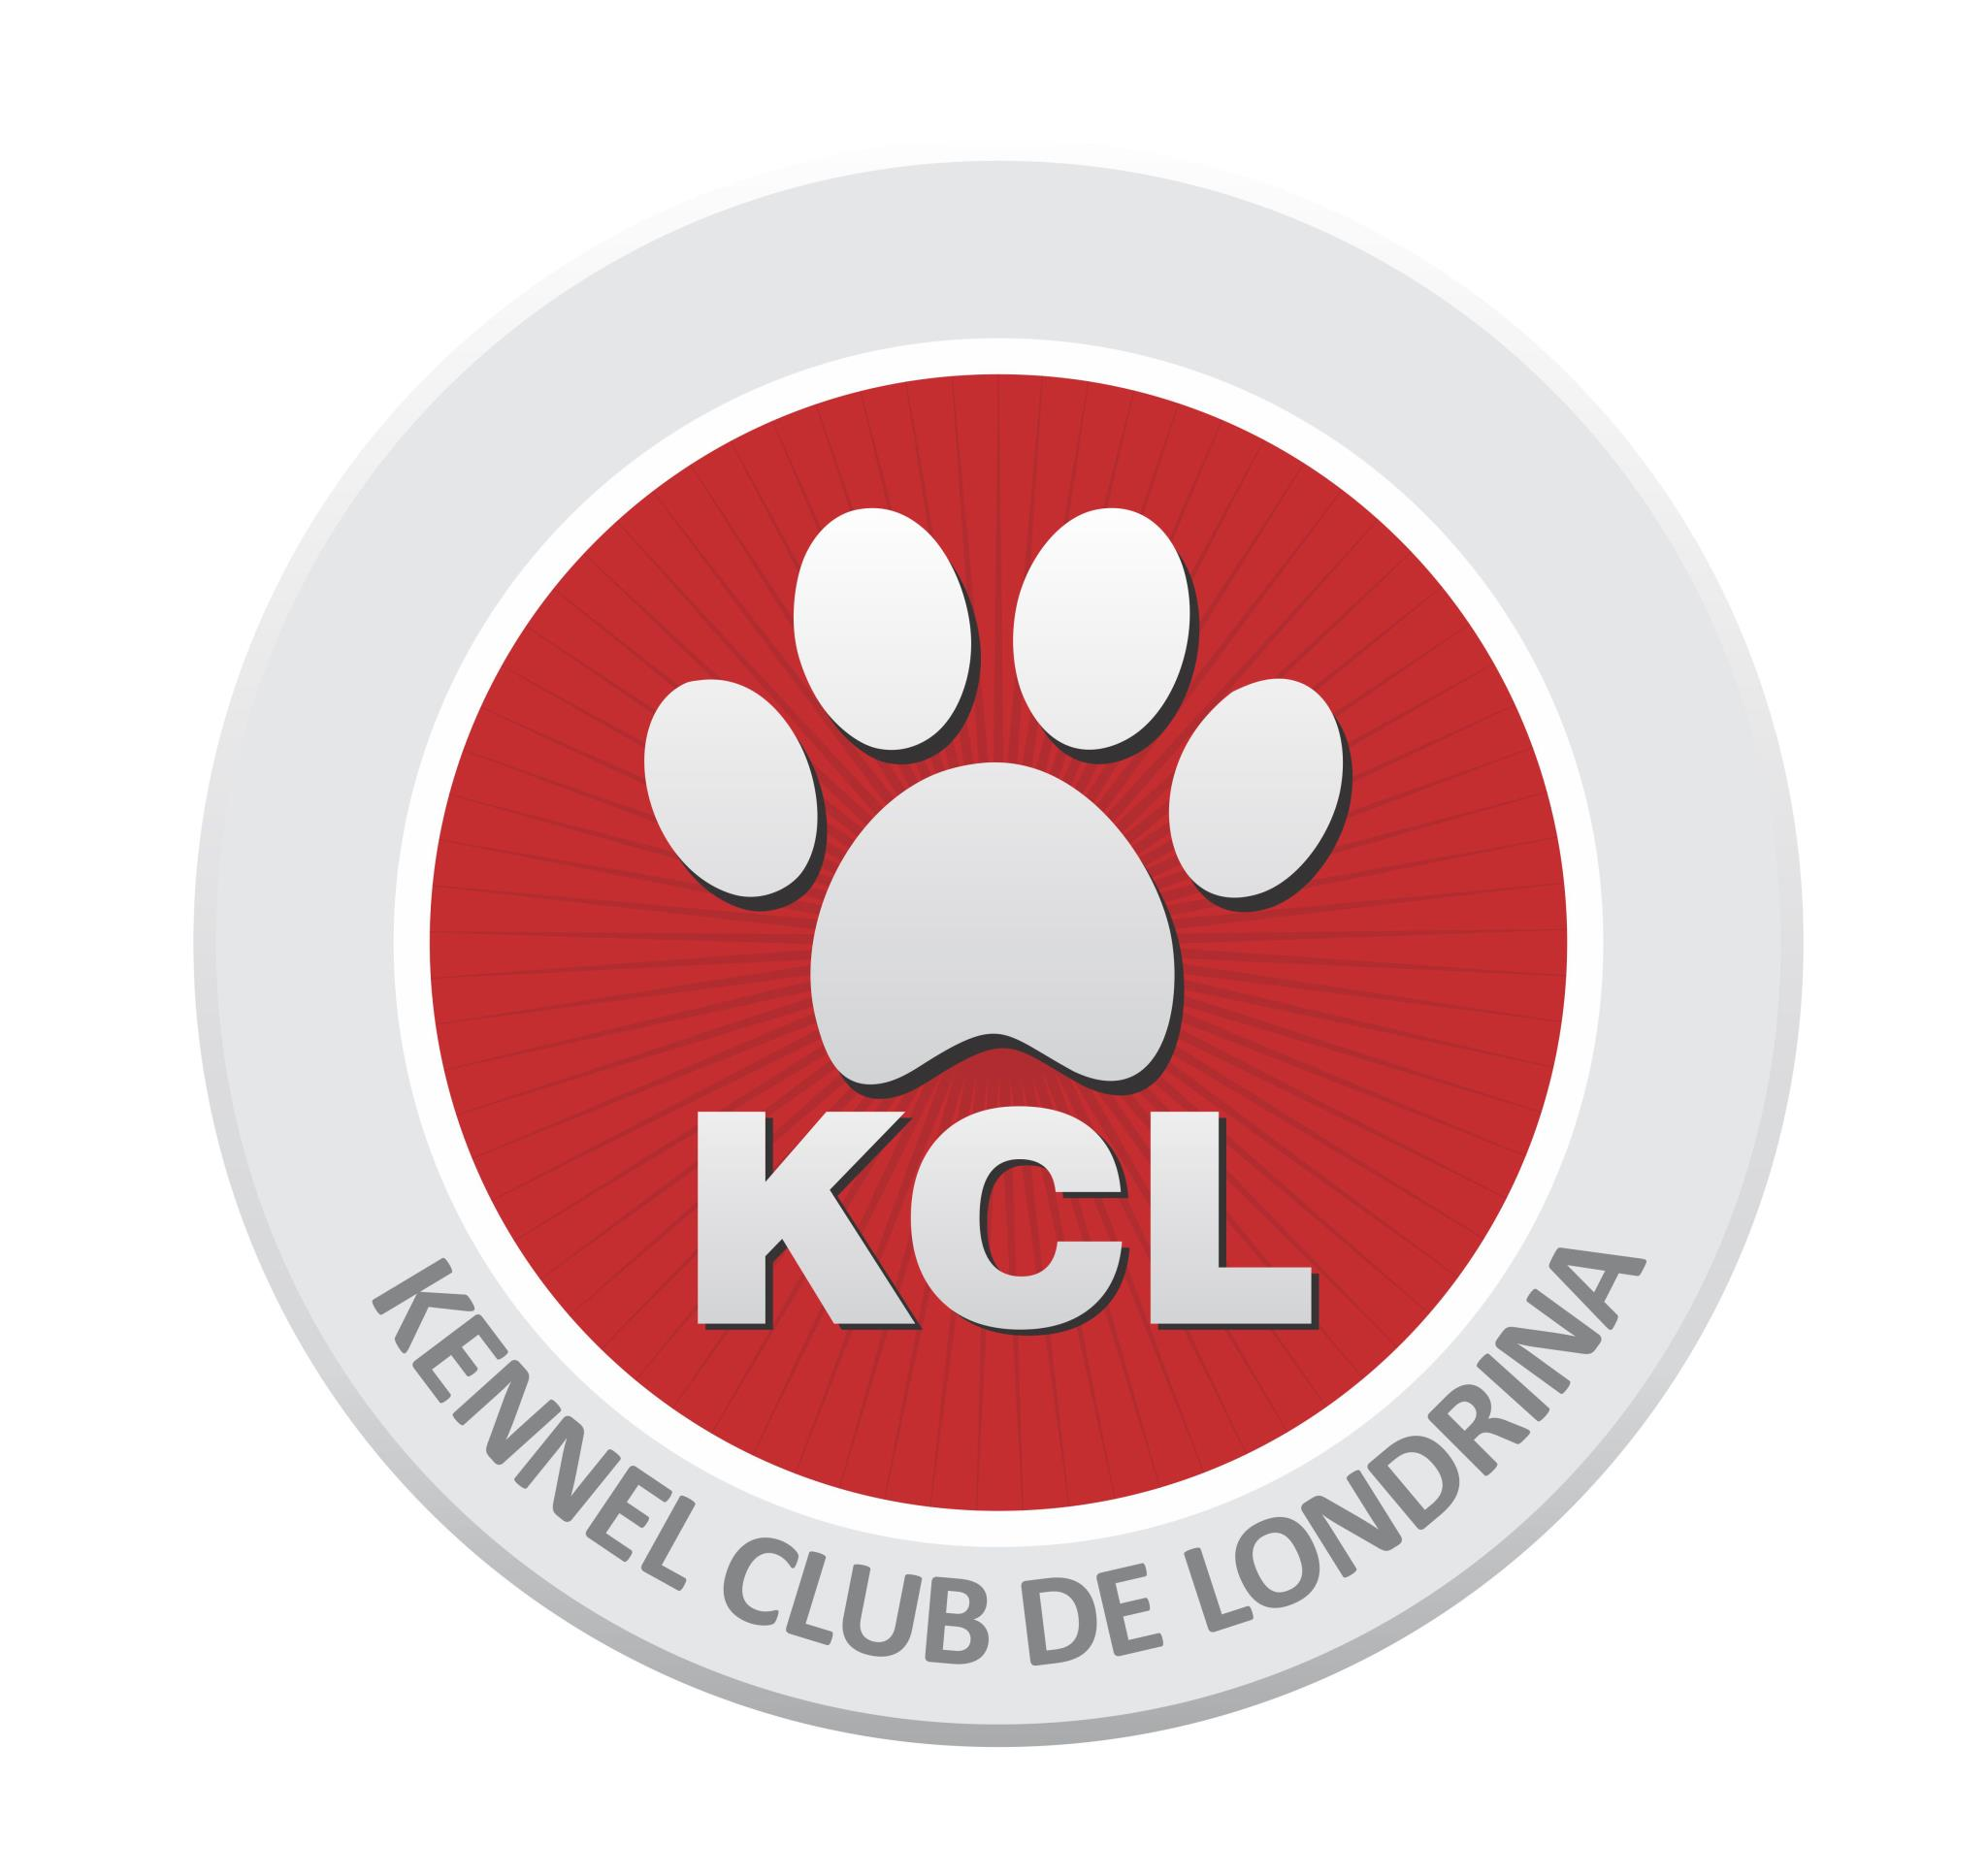 KCL – Kennel Club de Londrina